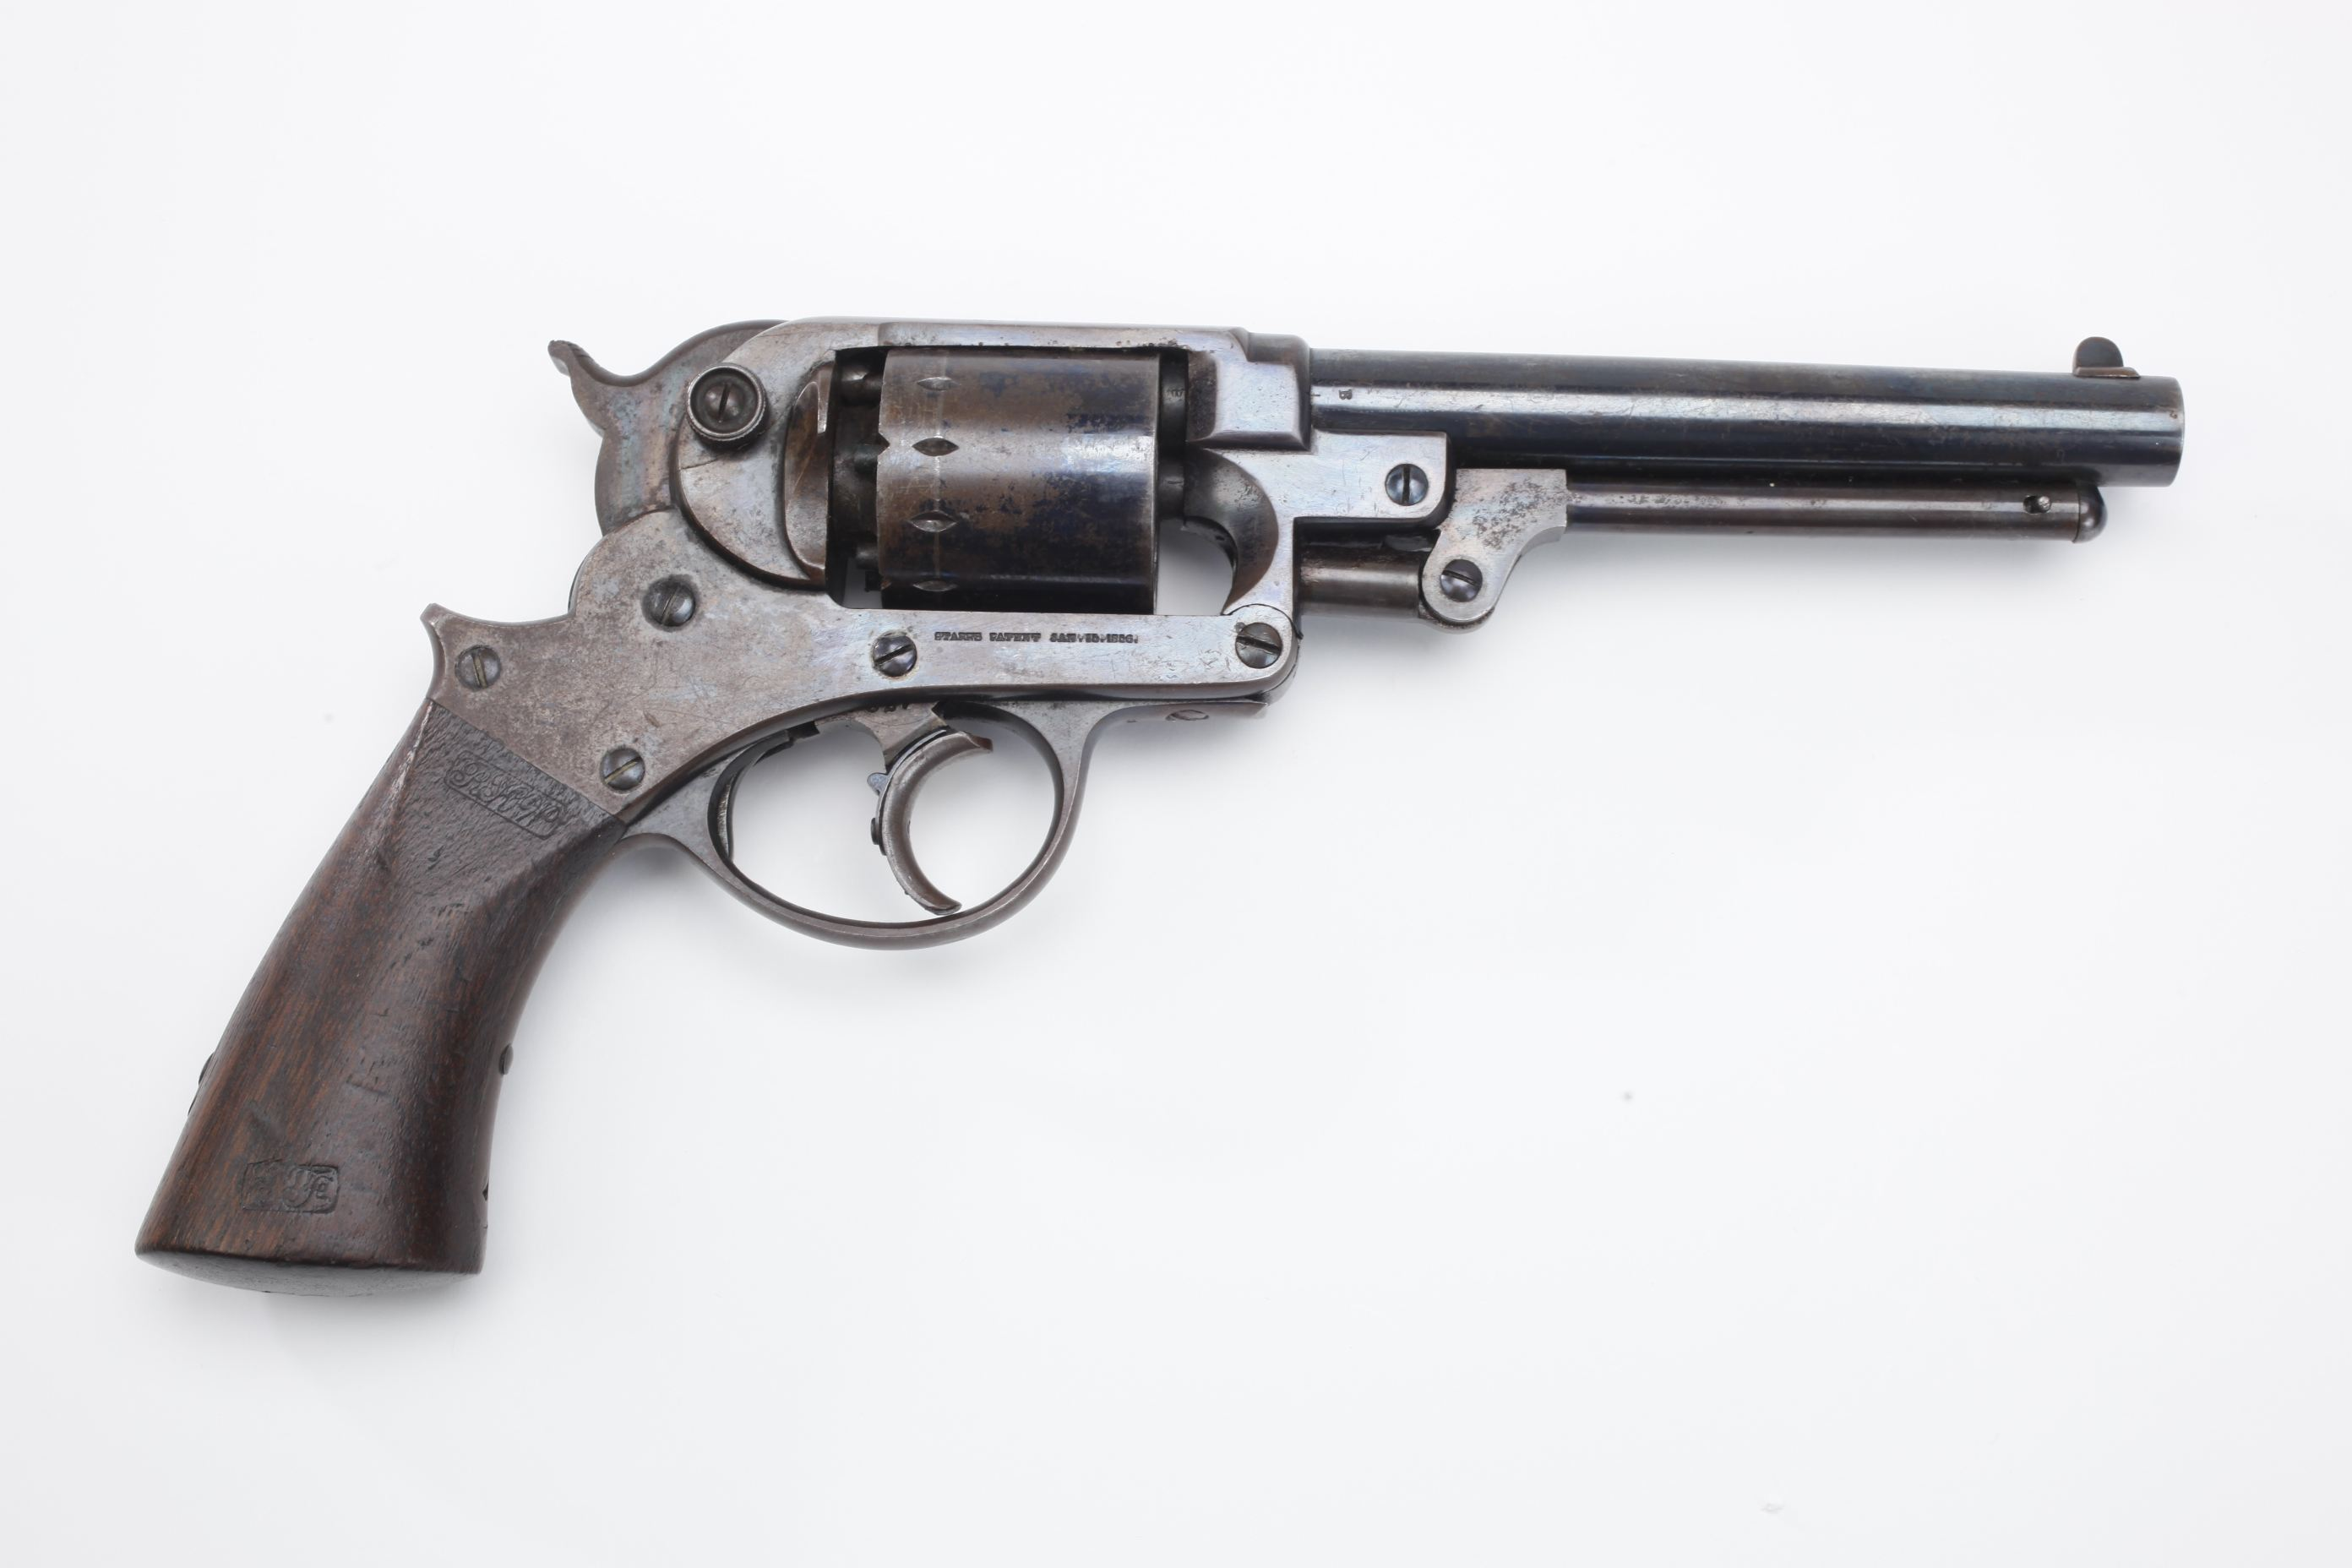 U.S. Starr Arms Co 1858 Double Action